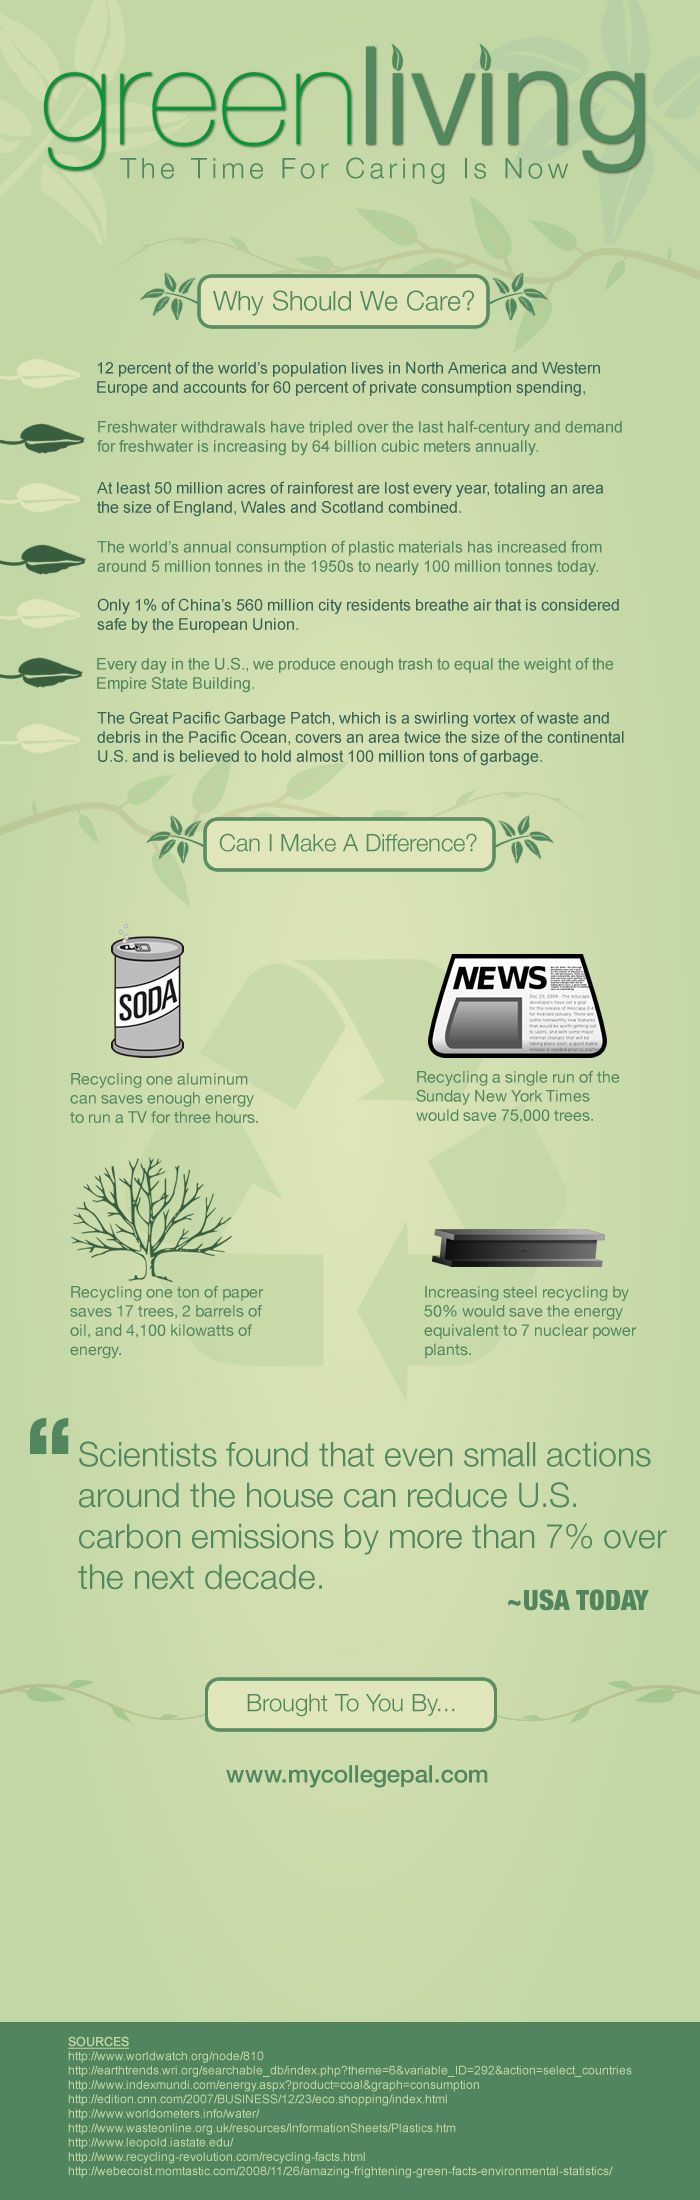 Green Living Infographic